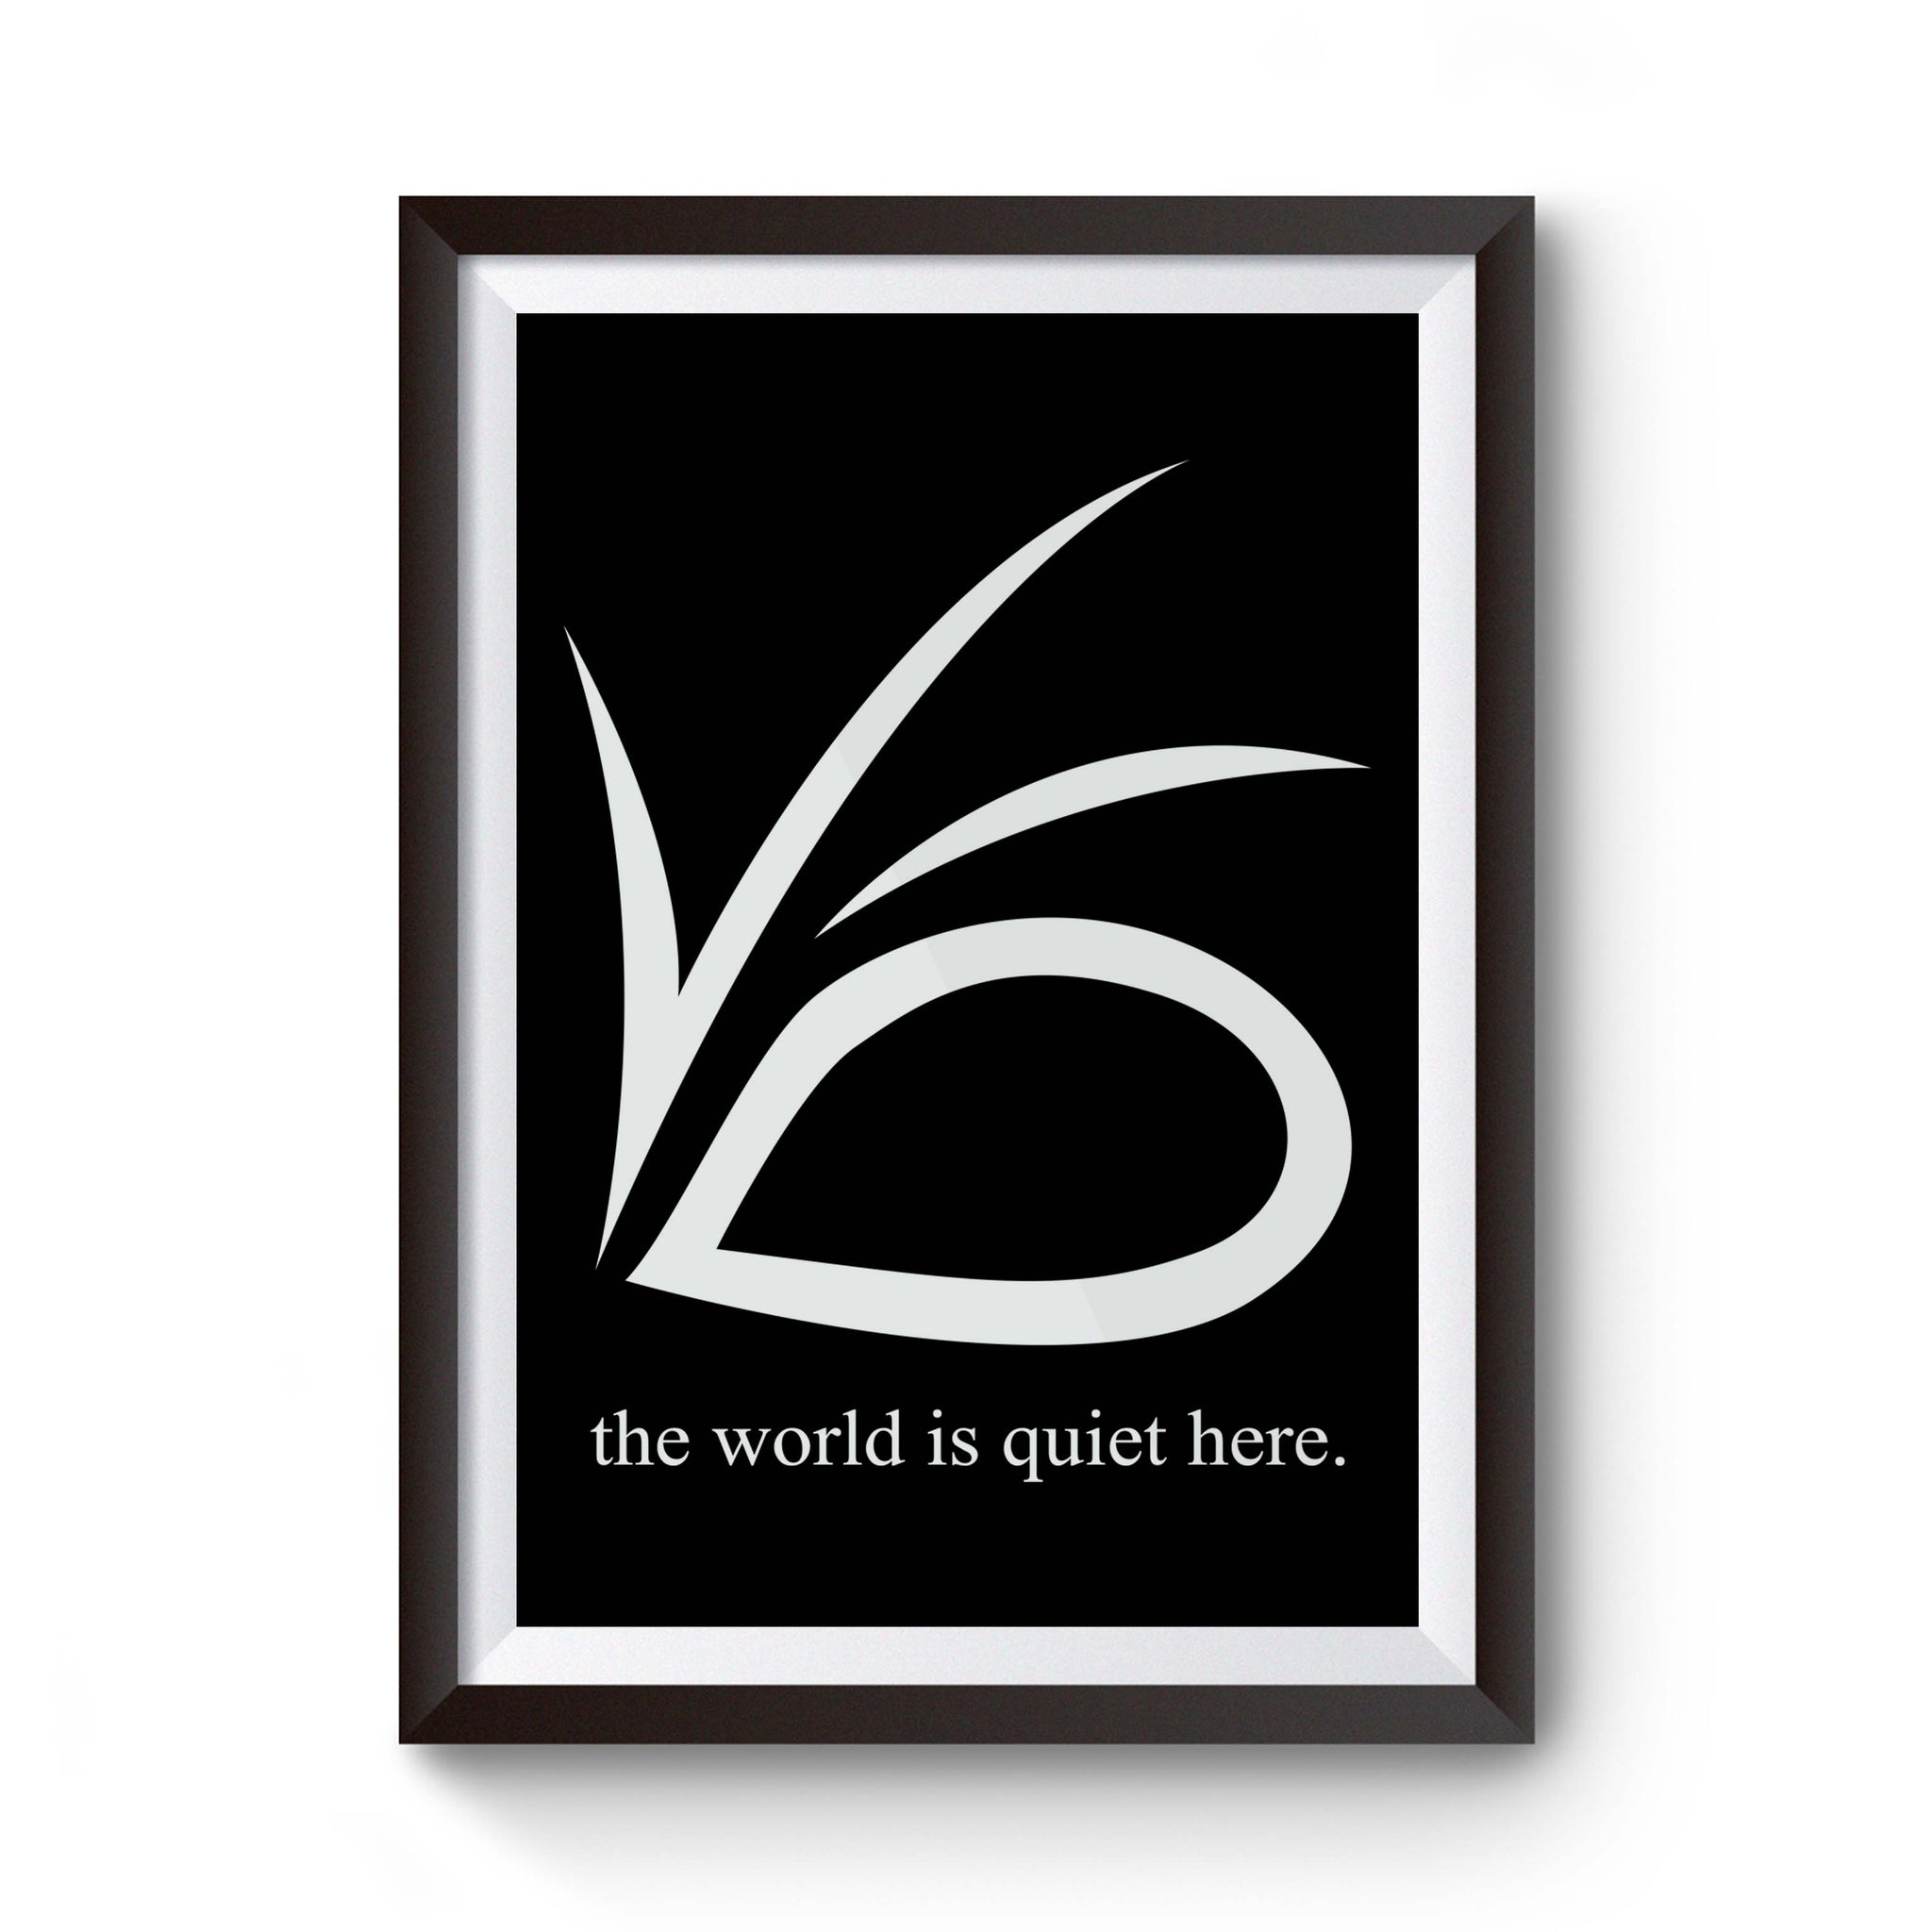 Vfd Motto Snicket Lemony Series Of Unfortunate Events Baudelaire Count Laf Eye World Is Quiet Here Gift Poster